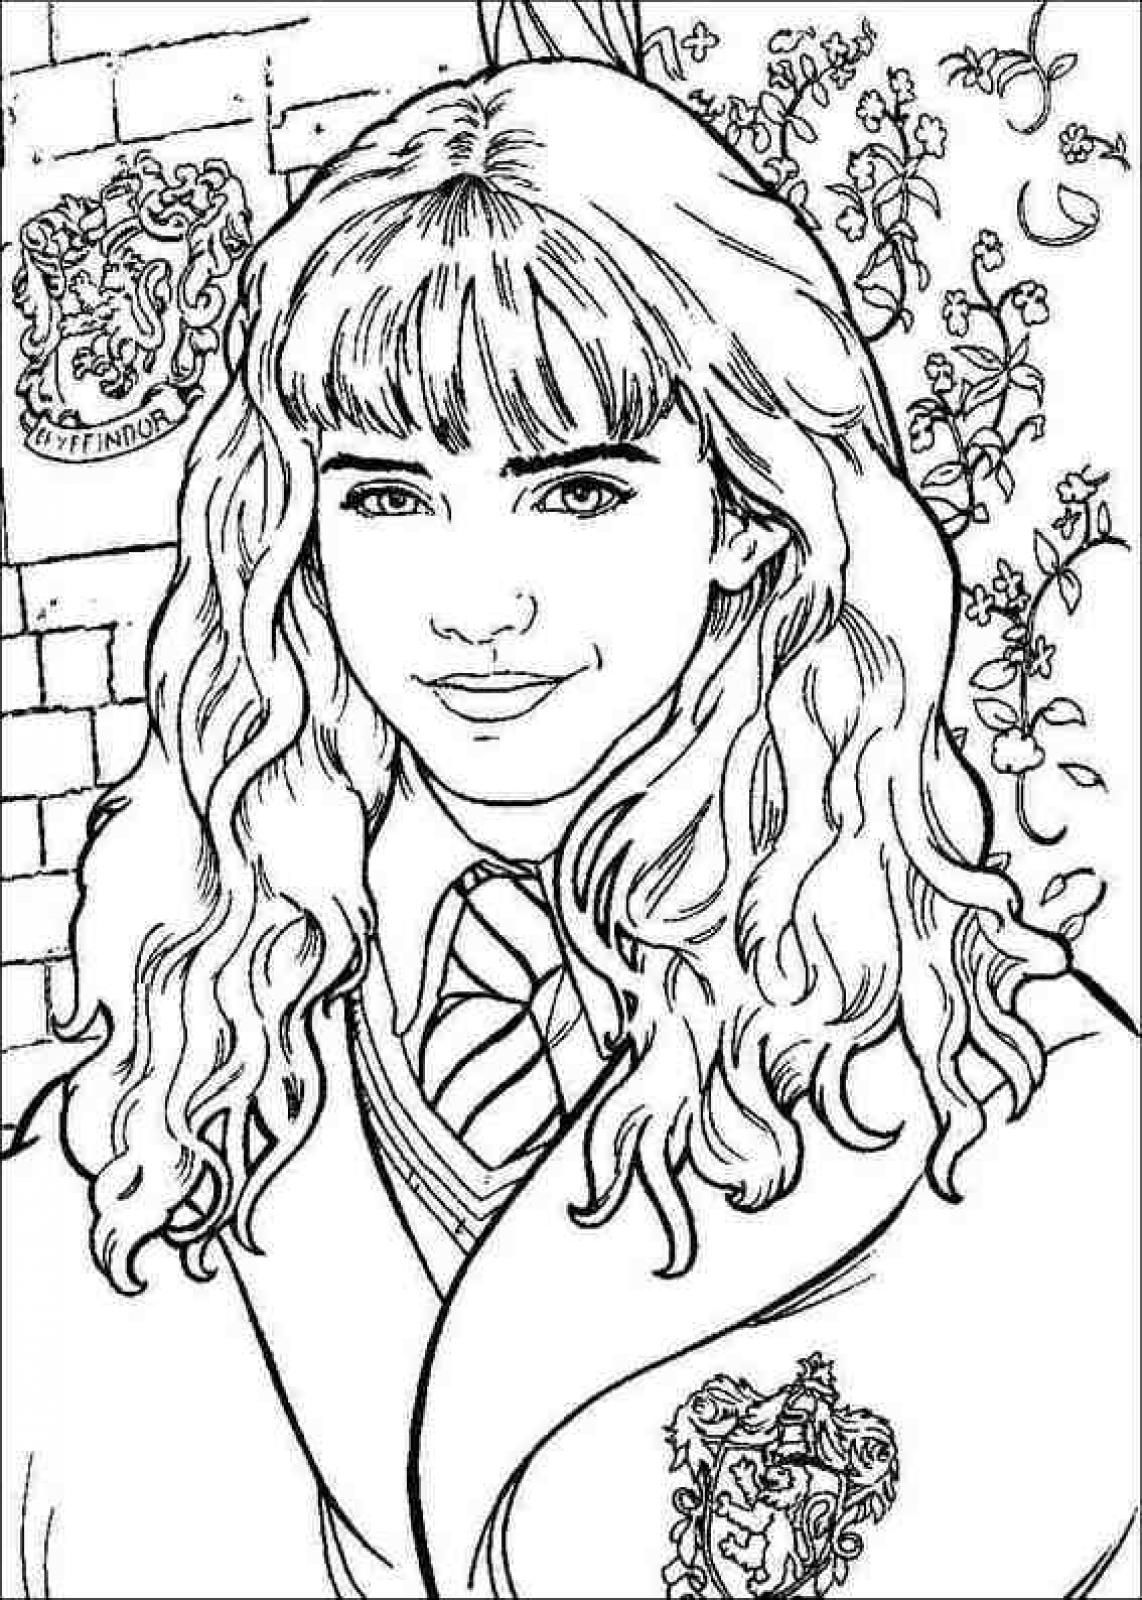 Harry Potter Printable Coloring Pages 70 Extra Coloring Page Disegni Da Colorare Disegni Di Harry Potter Pittura A Pois